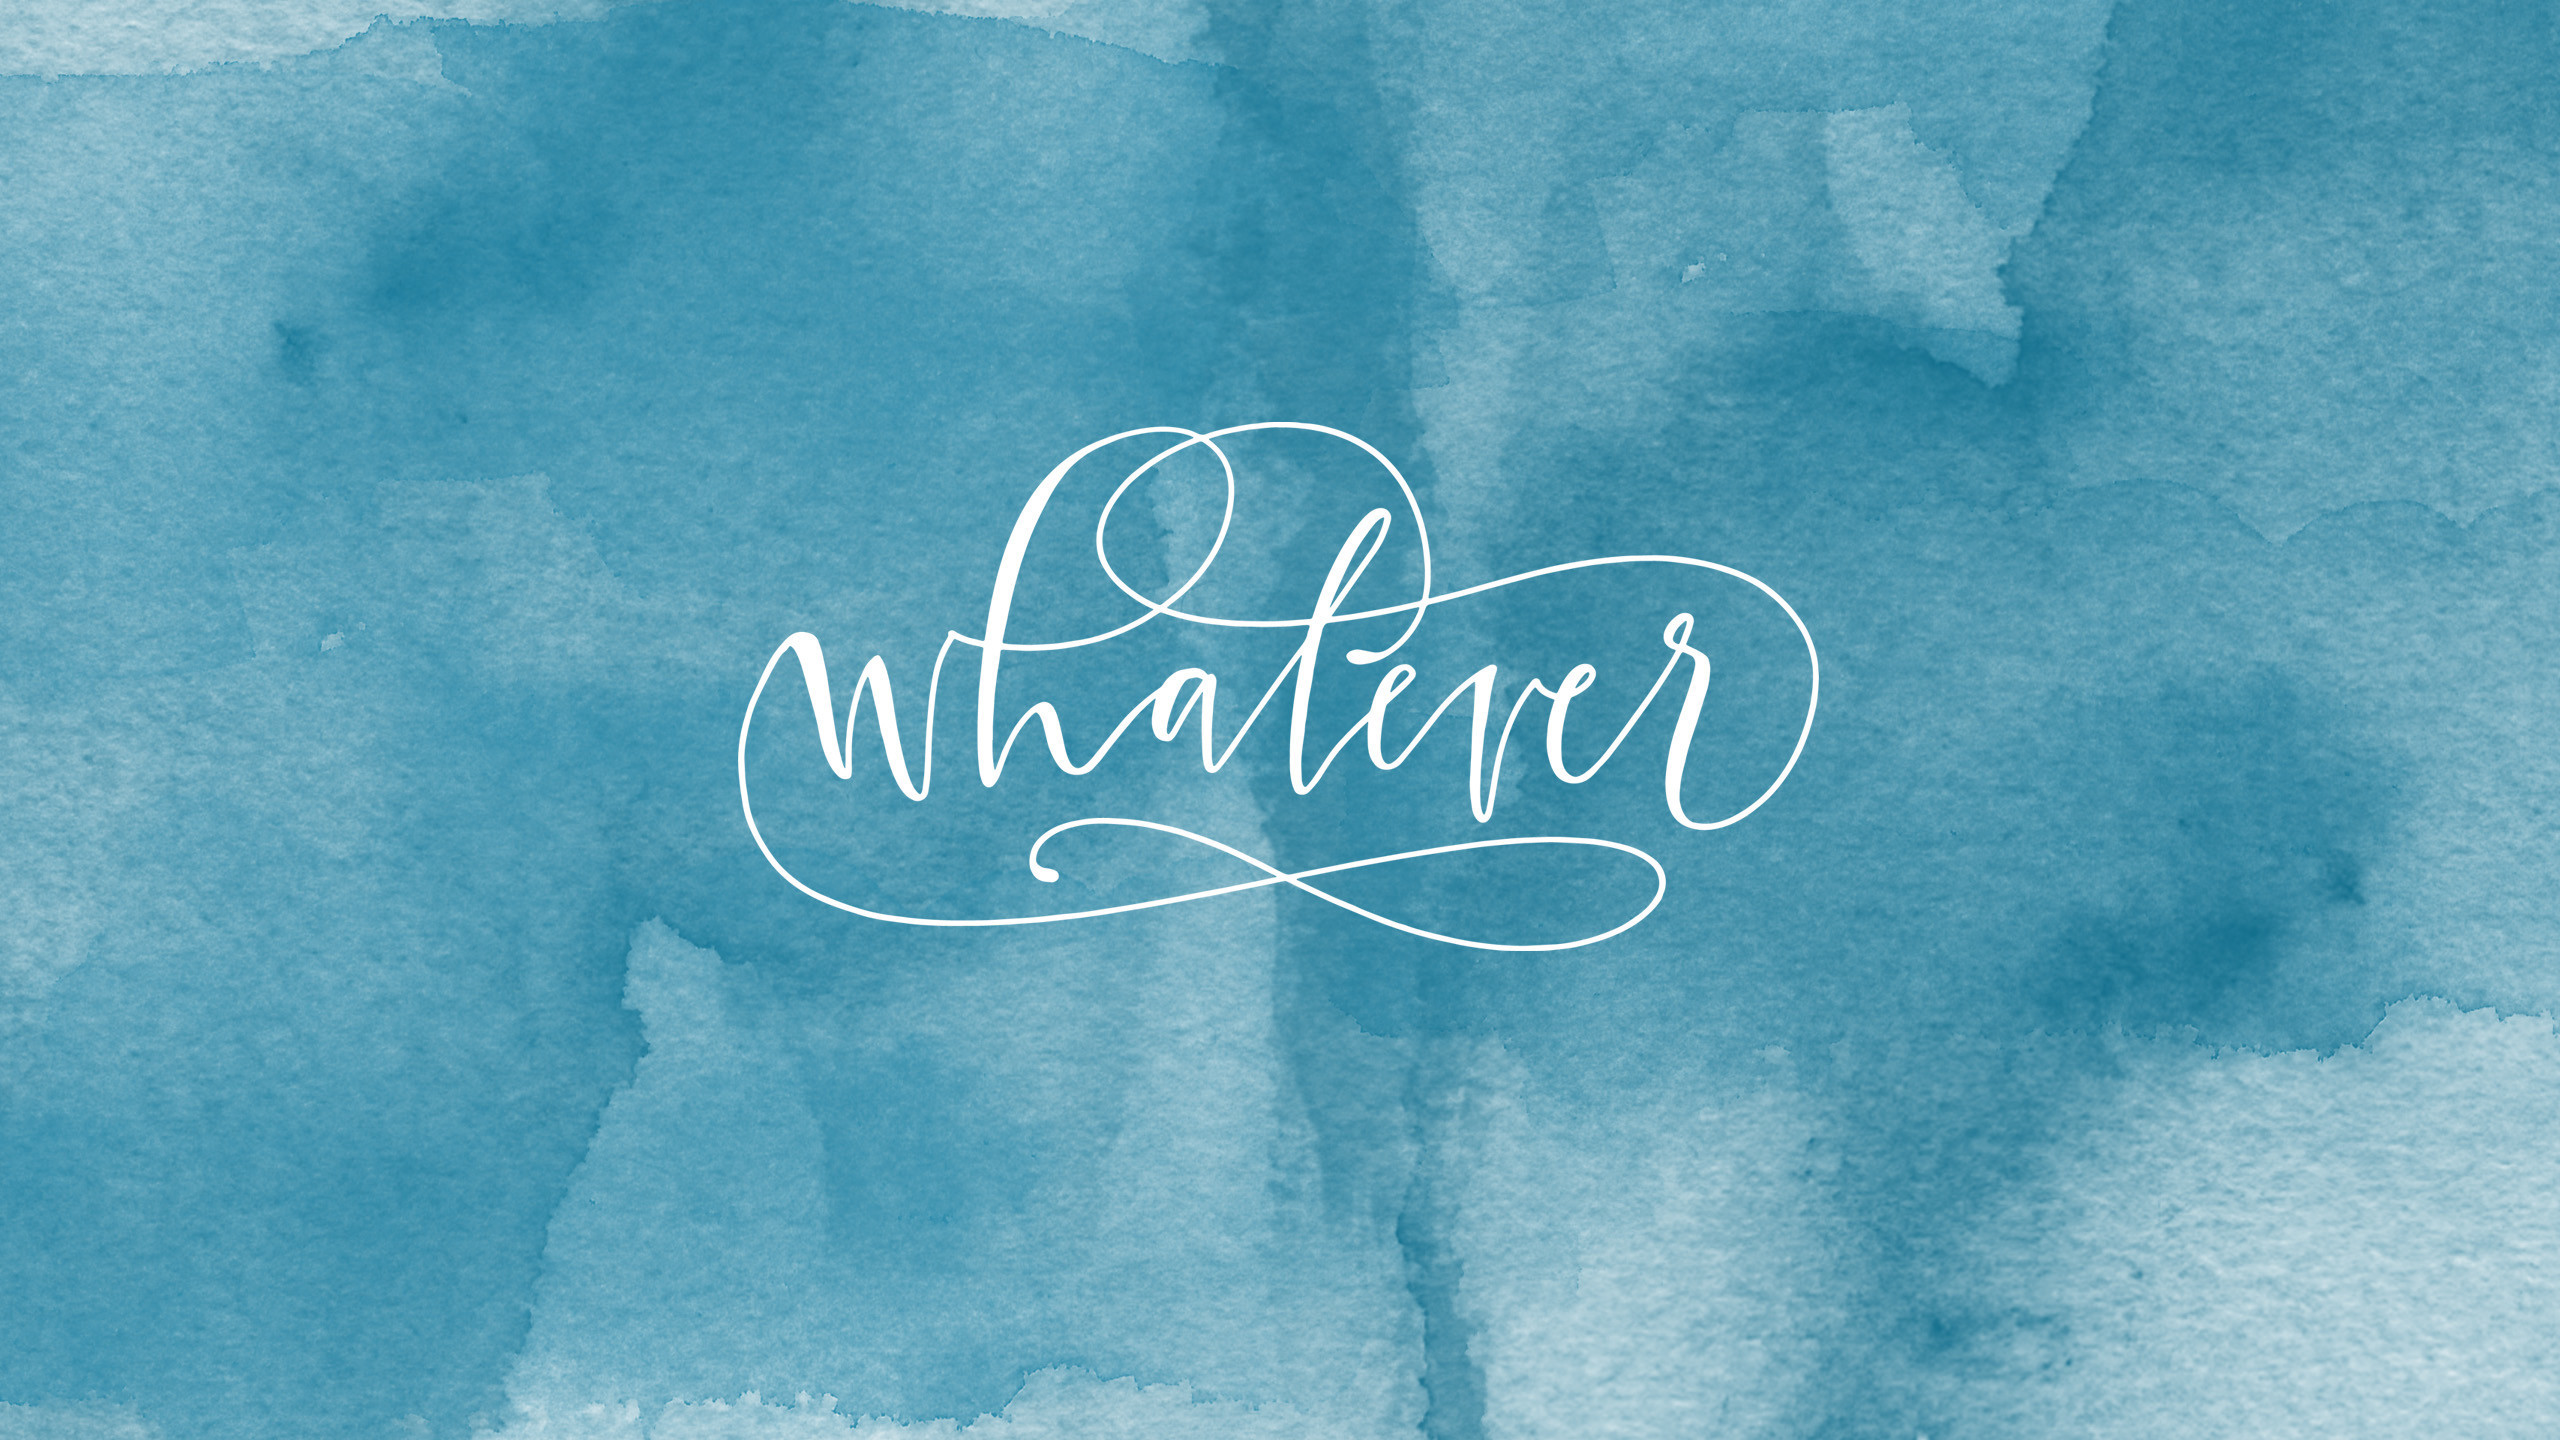 2560x1440  Blue teal watercolor Whatever desktop wallpaper background